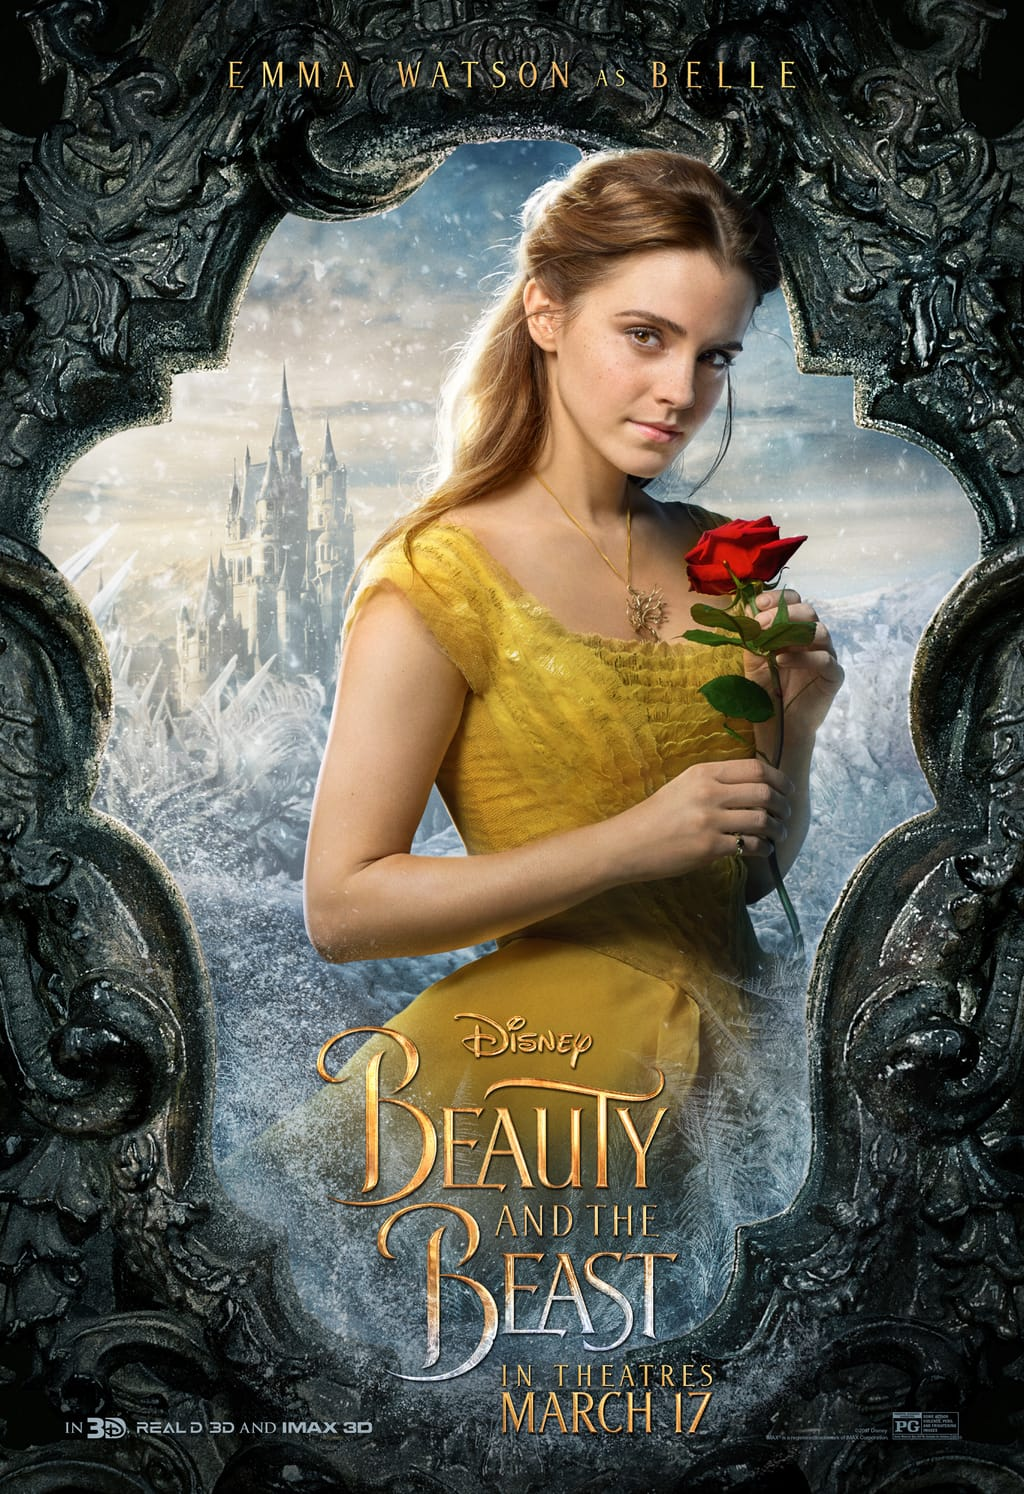 Disney's live-action Beauty and the Beast hits theaters two weeks from today! I remember the first time I saw this was in the works and thinking it was so beautiful!